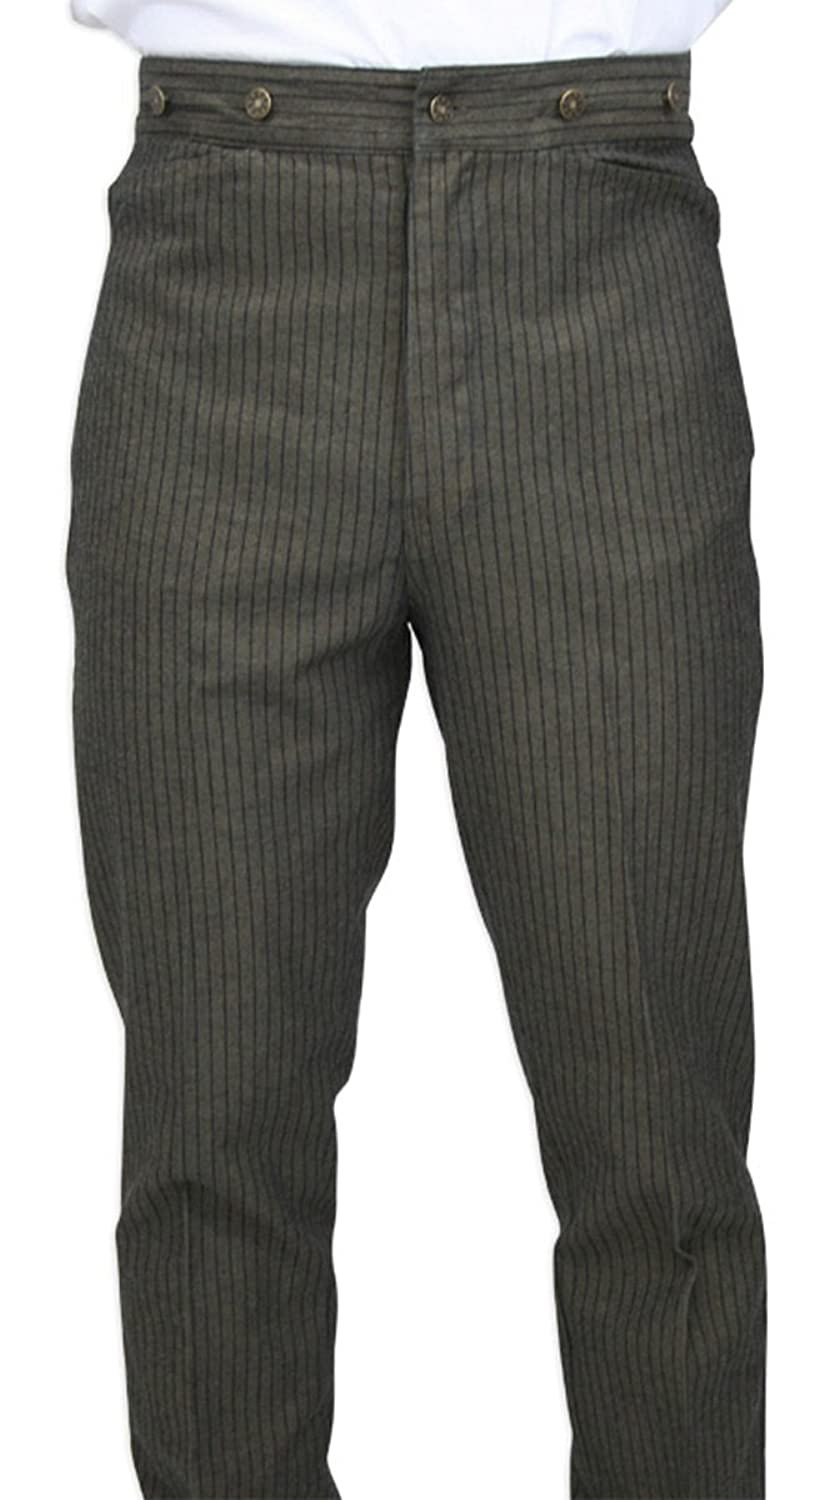 Edwardian Men's Pants High Waist Cotton Ludlow Striped Trousers $59.95 AT vintagedancer.com